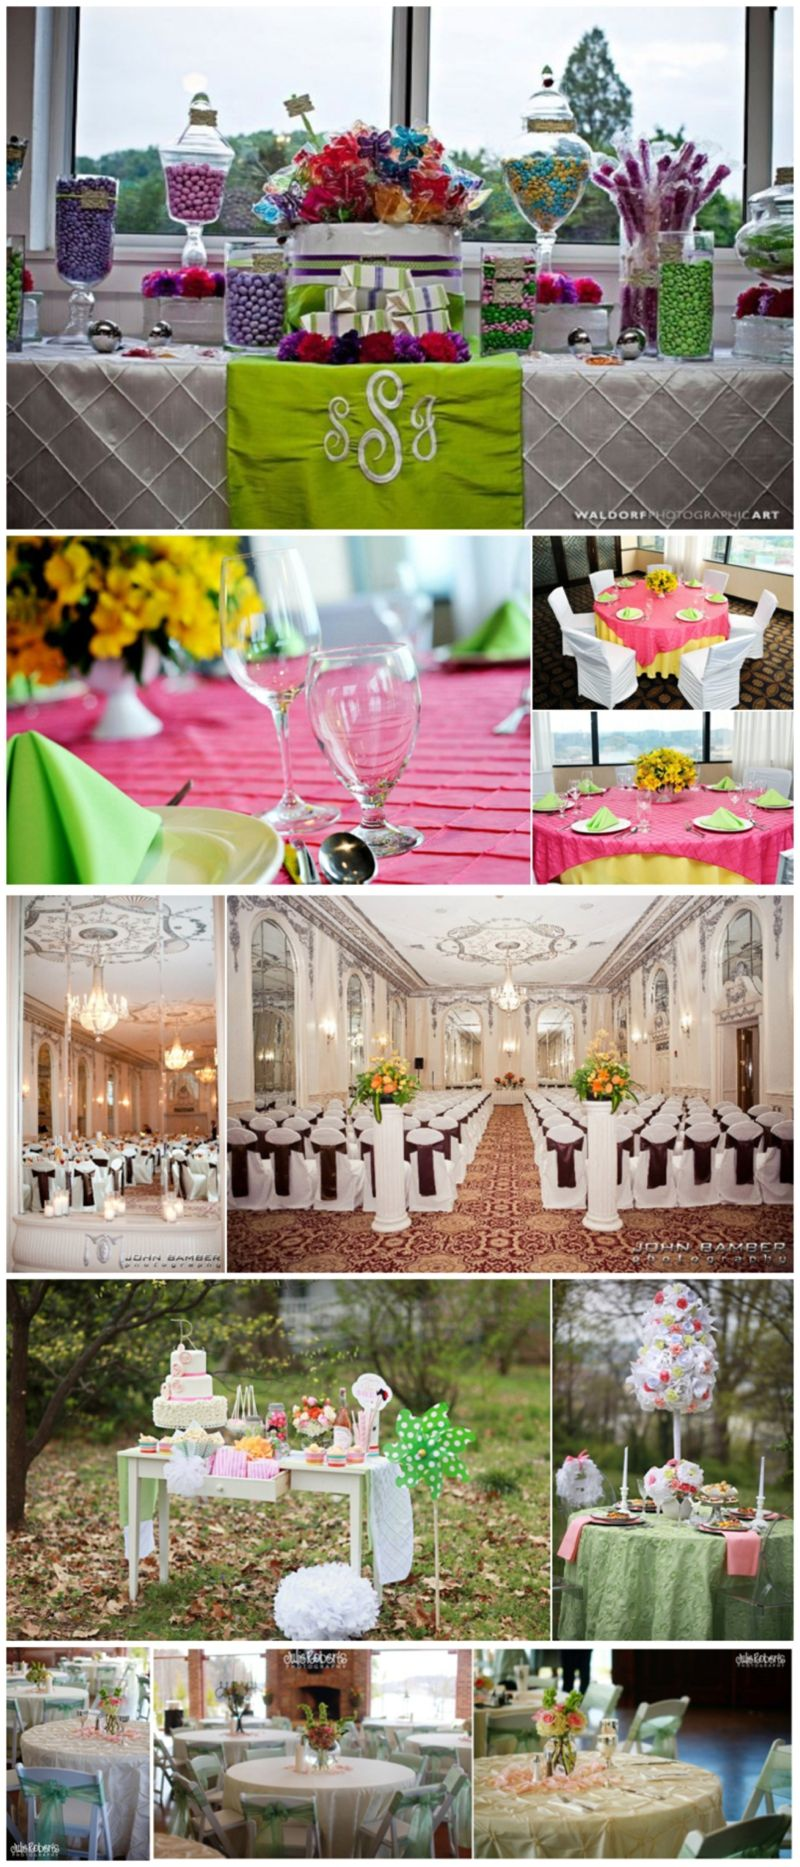 Chair covers and Linen ideas from White Table.   http://www.thebridelink.com/blog/2012/09/18/white-table-specialty-linens/#